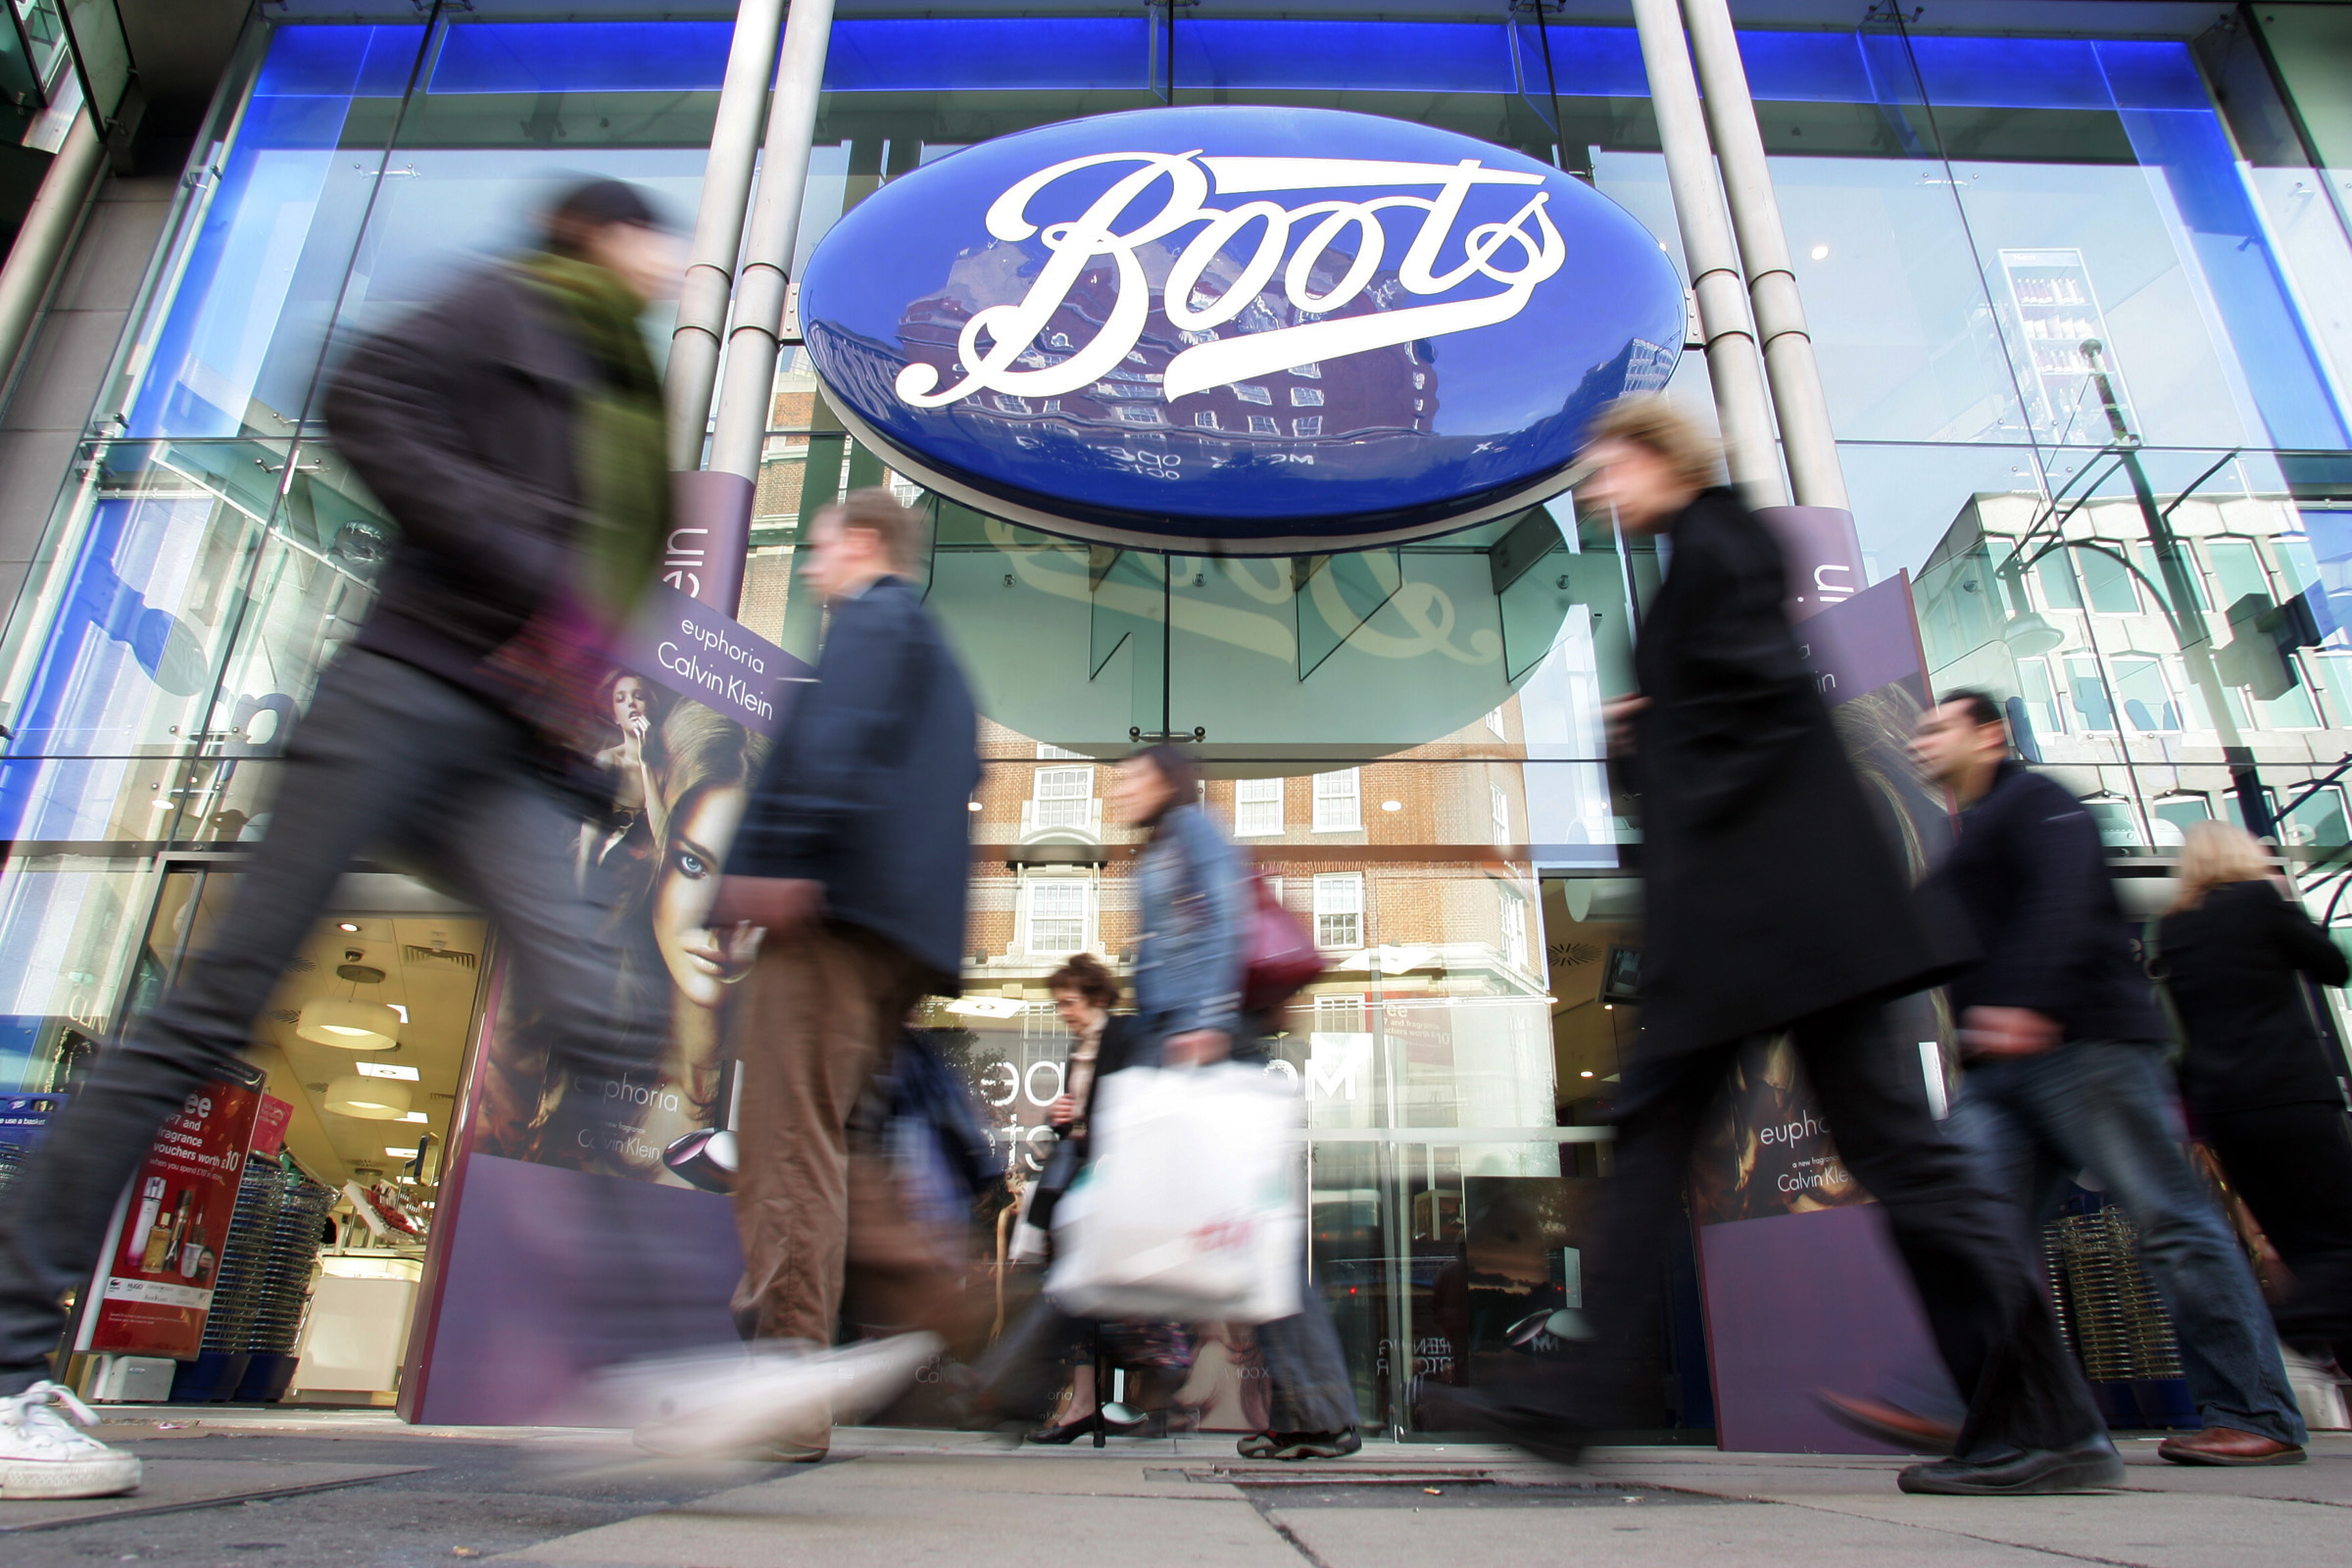 Boots storefront